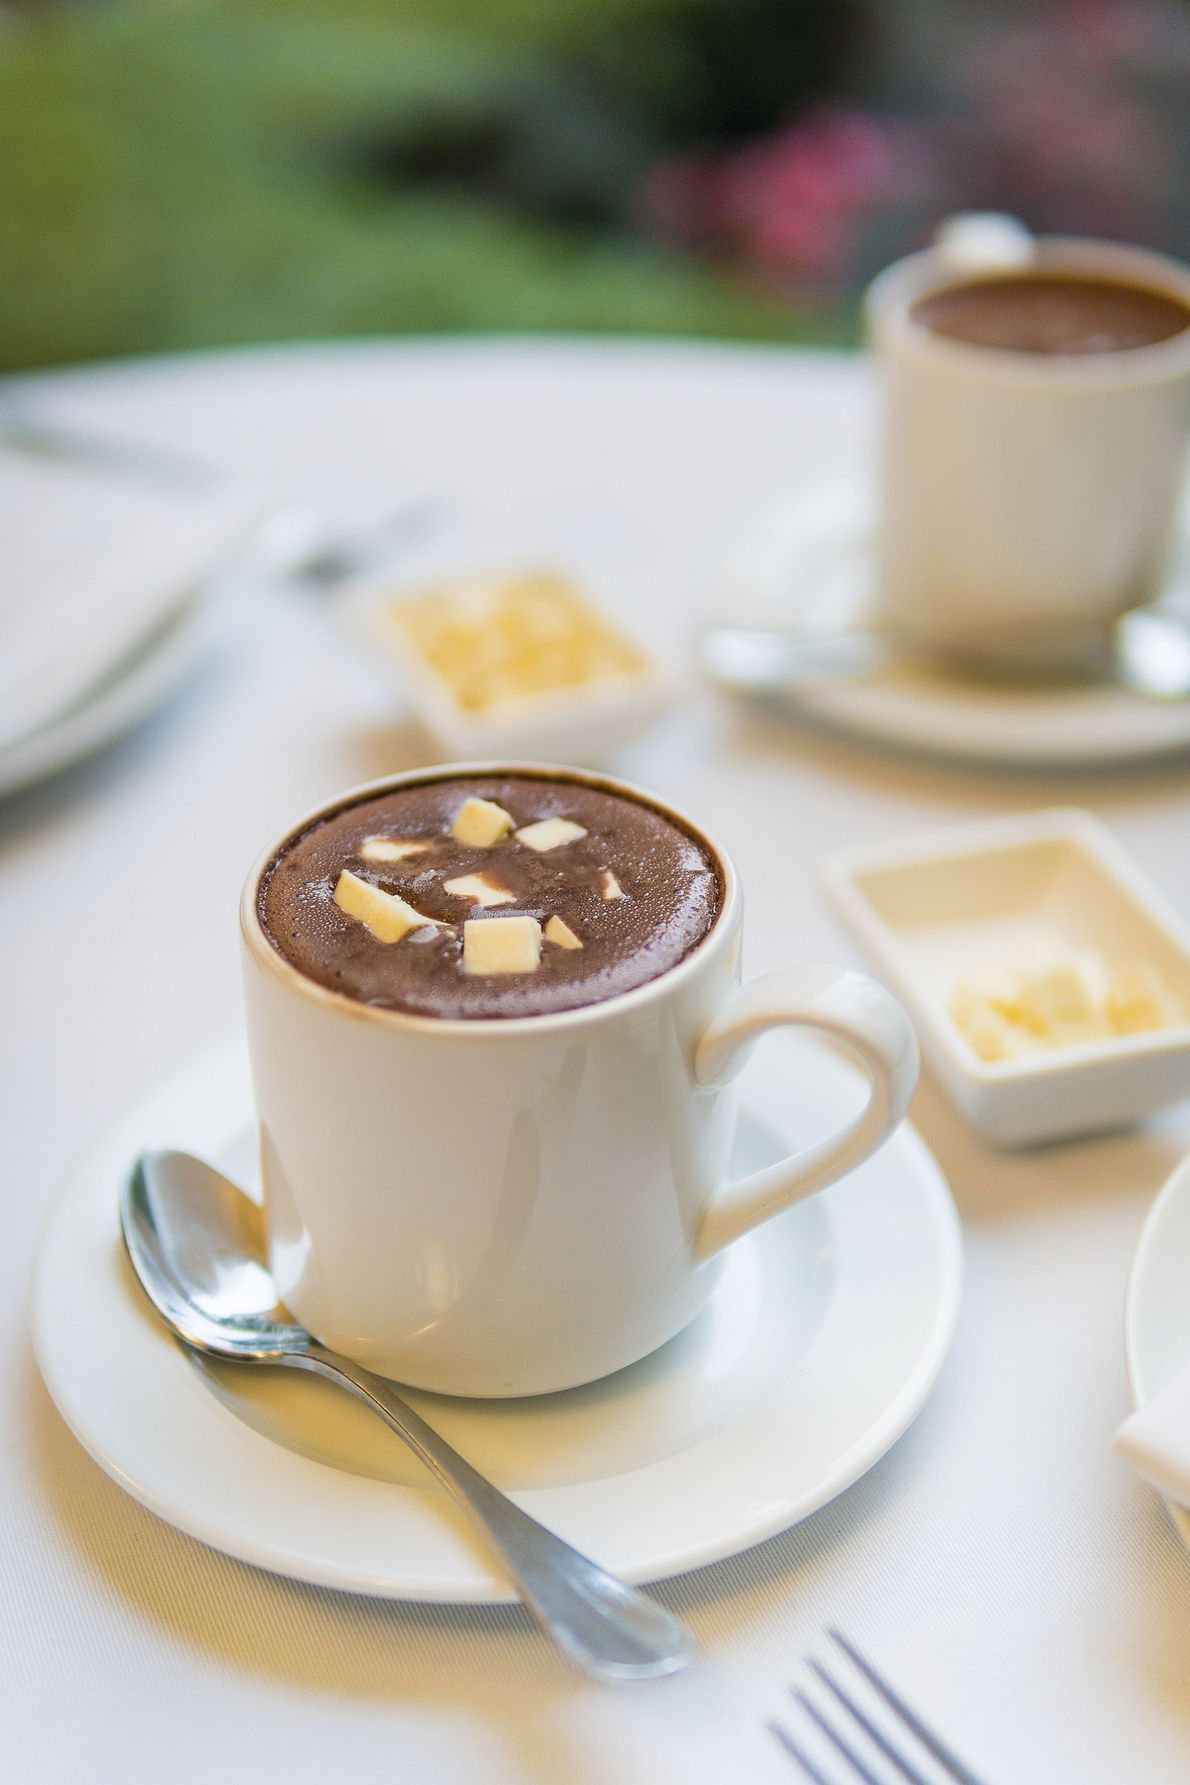 Spiced hot chocolate with cheese at Casa Gangotena, Quito.